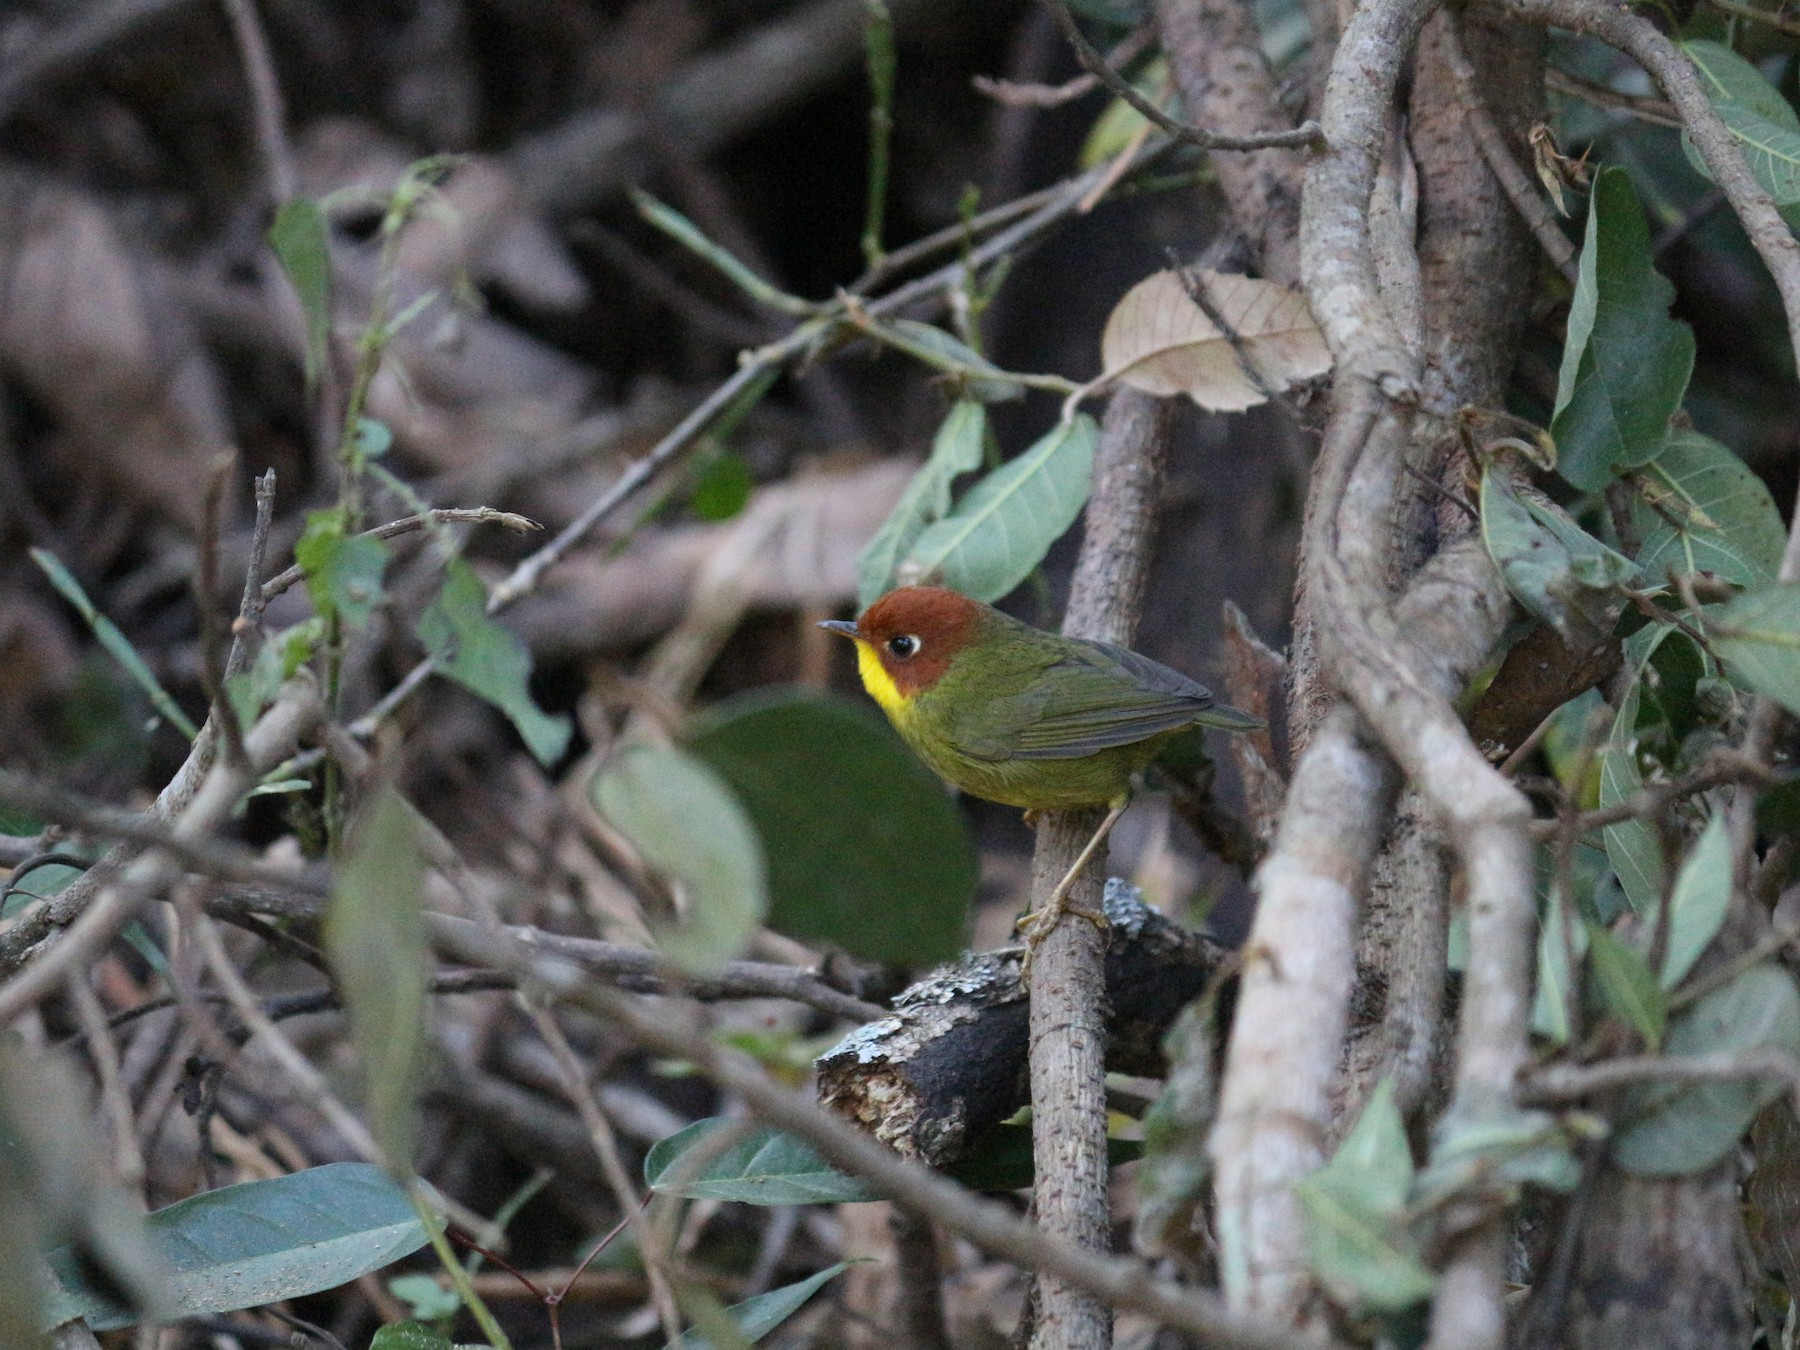 Chestnut-headed Tesia - Vipul  lunia